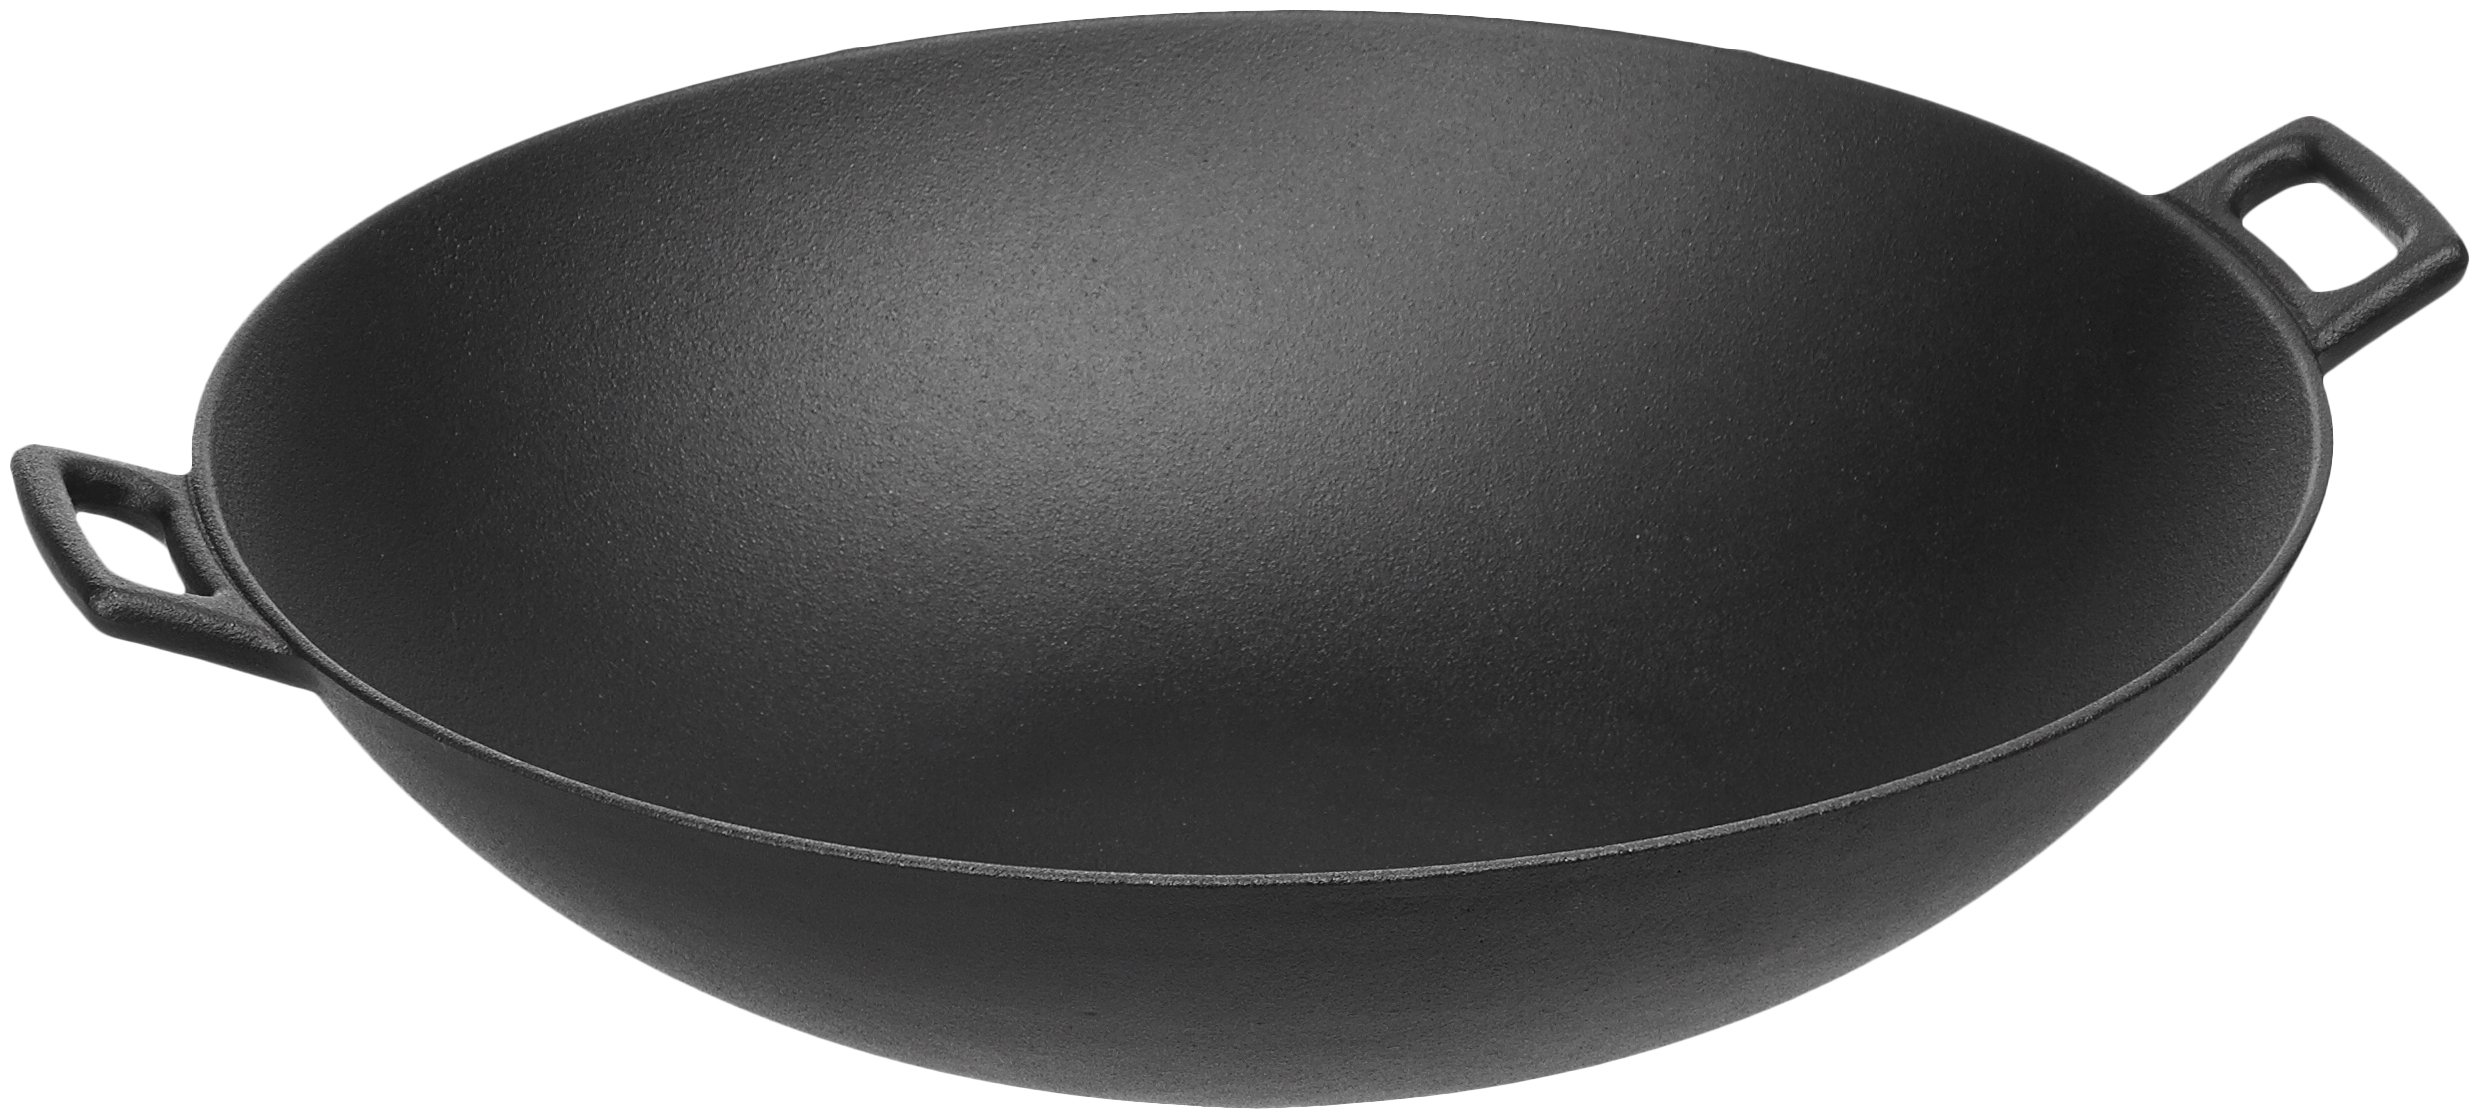 AmazonBasics Pre-Seasoned Cast Iron Wok Pan by AmazonBasics